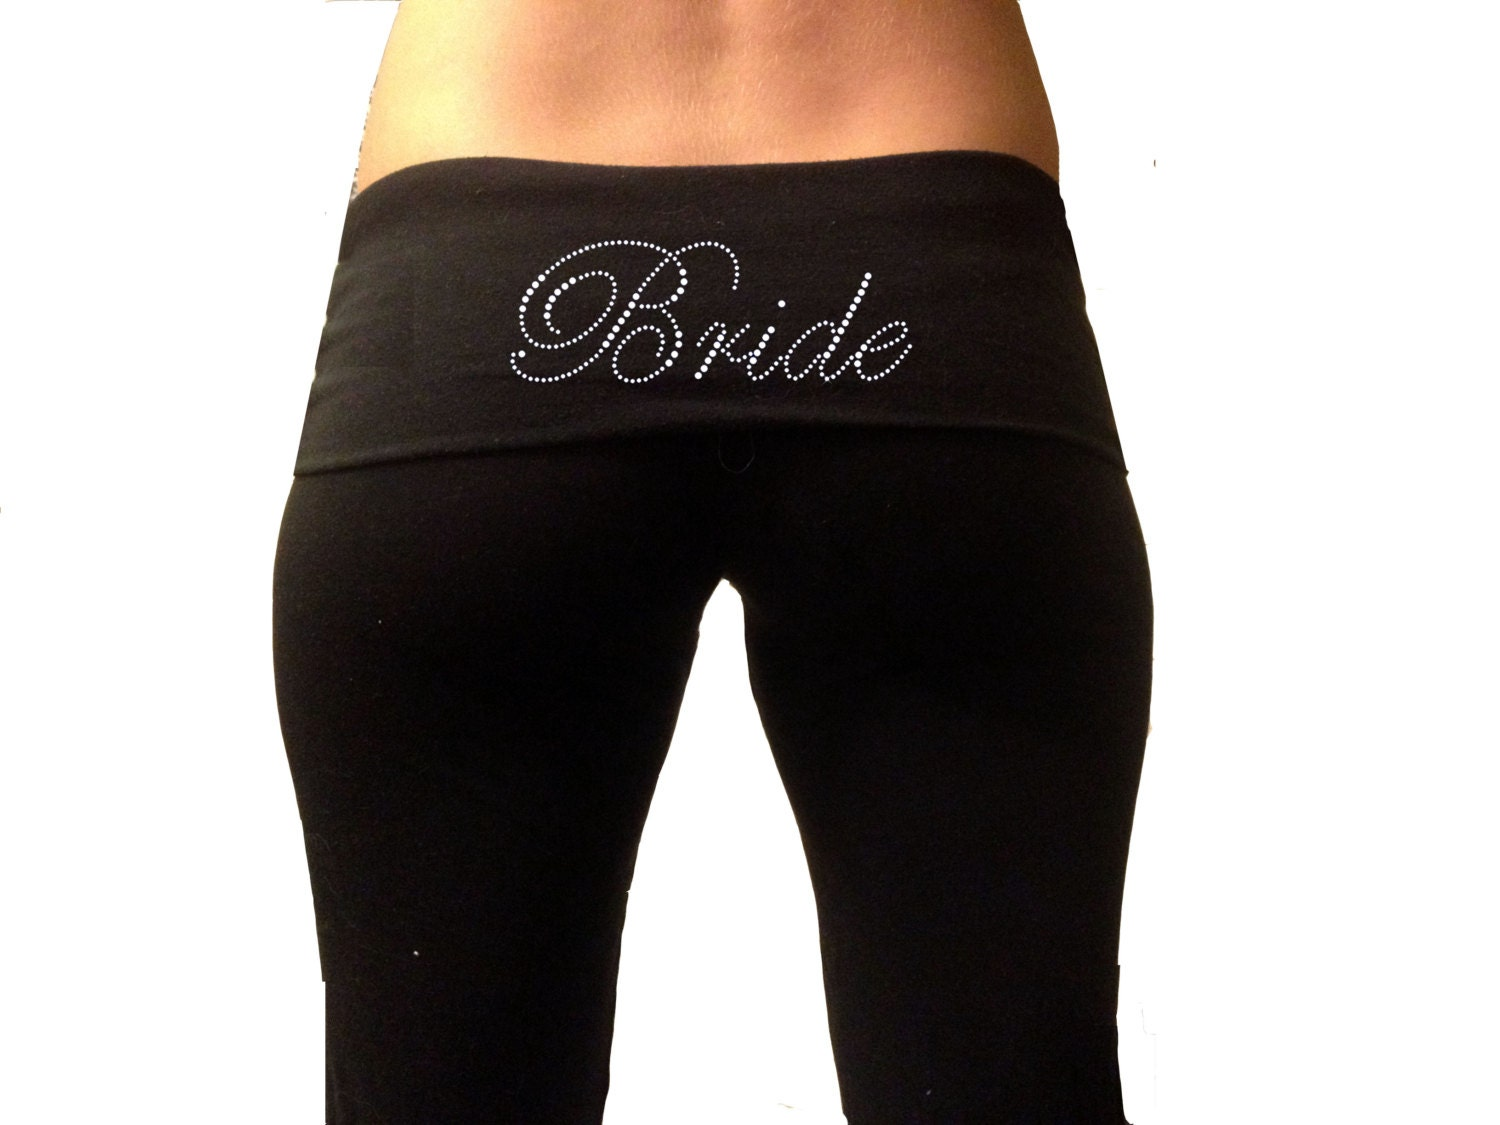 Bride Yoga Pants . Bride Pants . High Quality Women's Yoga